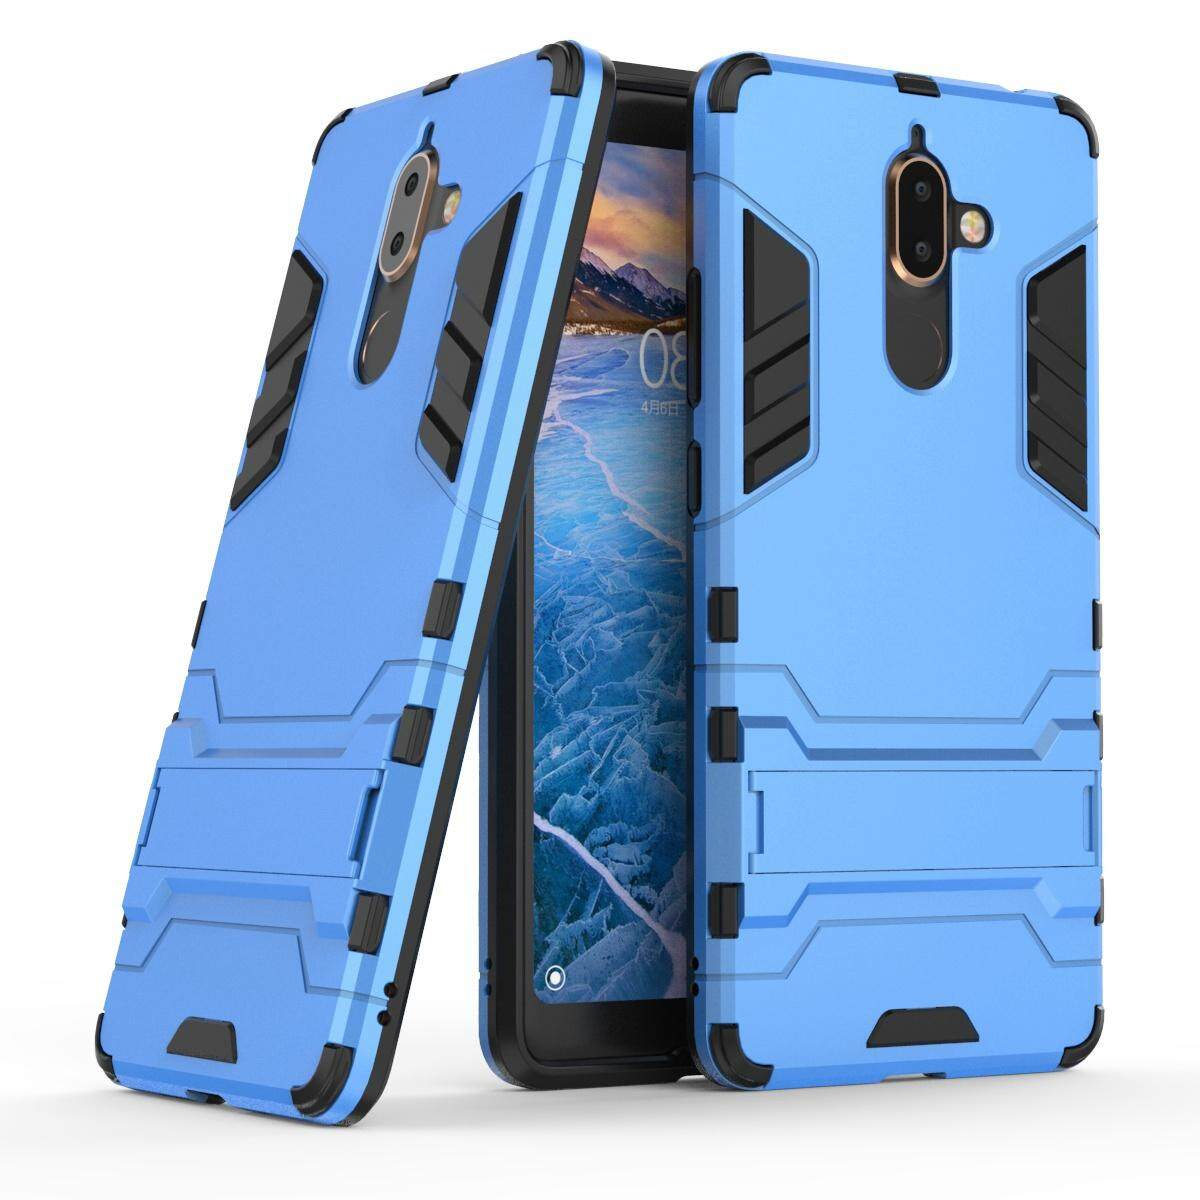 Nokia 7 Plus 2018 Case, Meishengkai 2 in 1 Detachable Dual-Layer Shockproof Armor